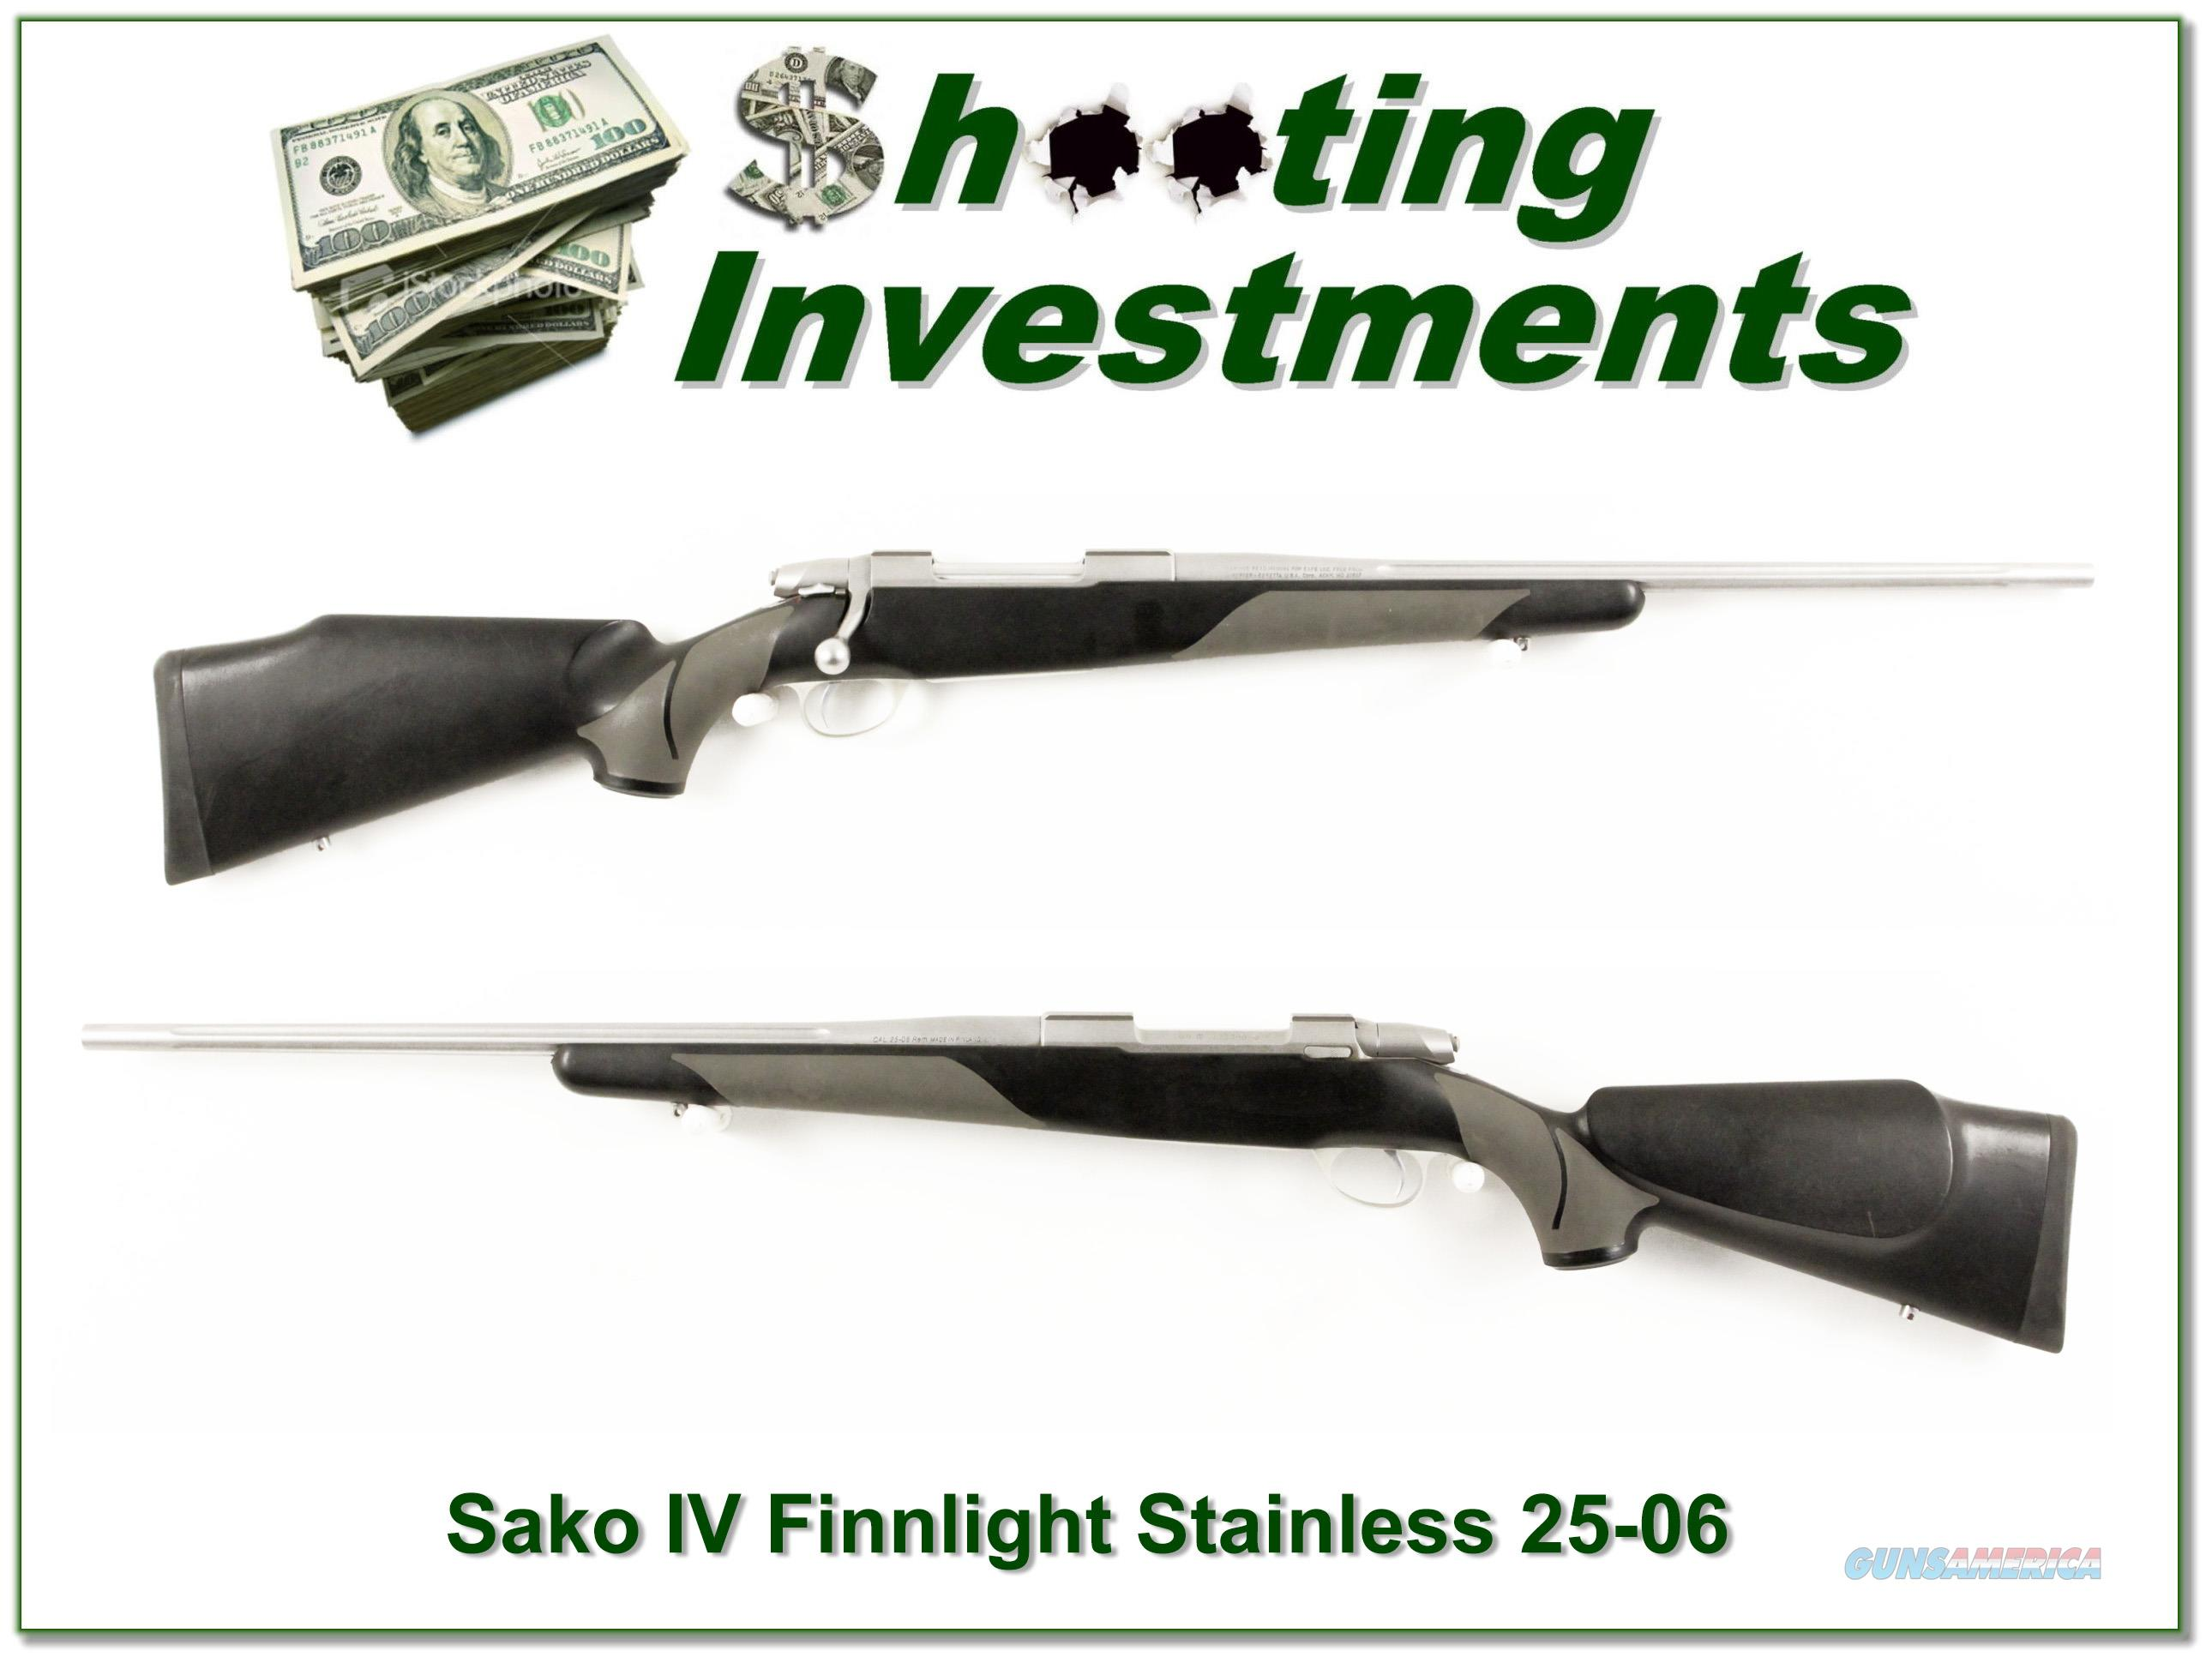 Sako 75 Finnlight Stainless Fluted hard to find 25-06  Guns > Rifles > Sako Rifles > M85 Series